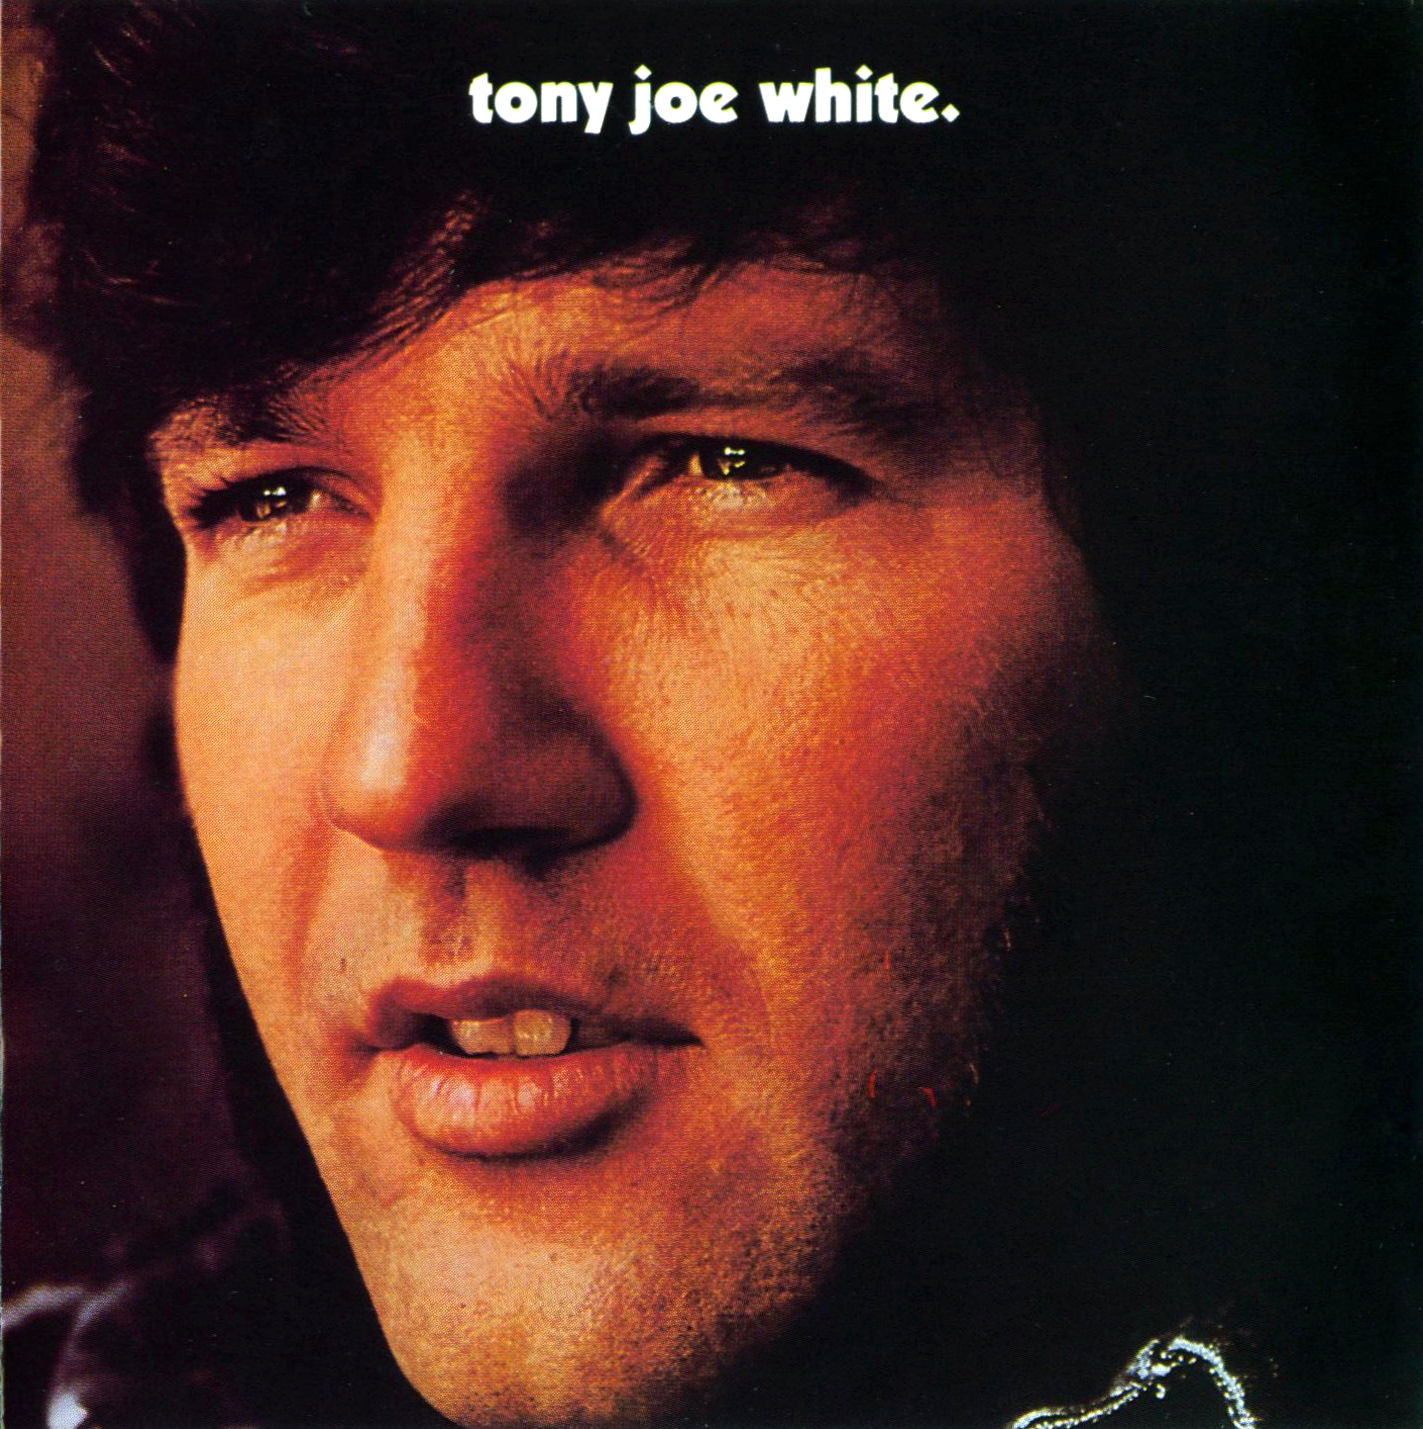 La Nueva M 250 Sica Cl 225 Sica Tony Joe White Tony Joe White